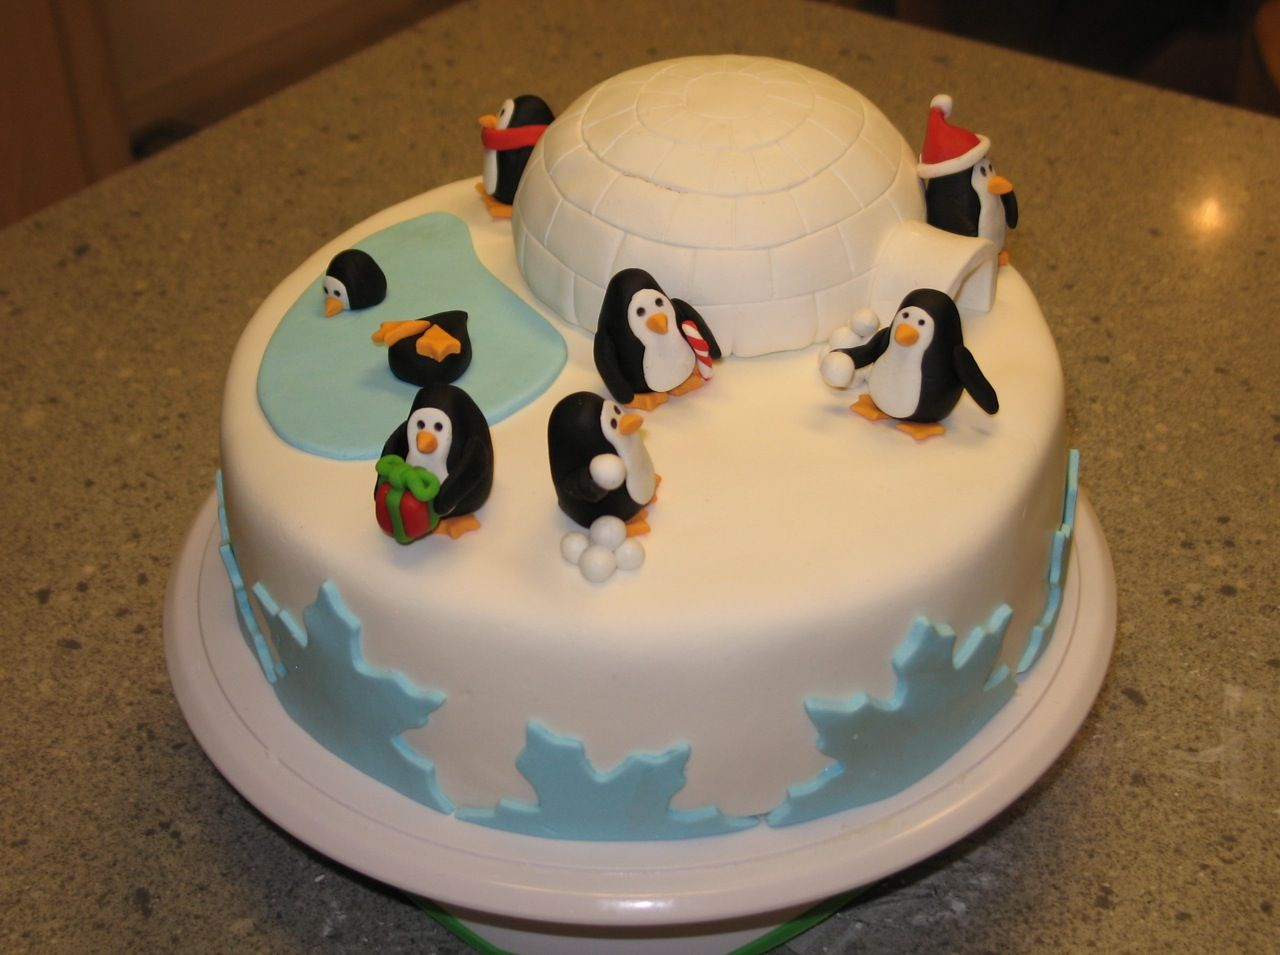 Christmas Cake Ideas With Penguins : - Chocolate cake with vanilla buttercream. Covered in MFF ...